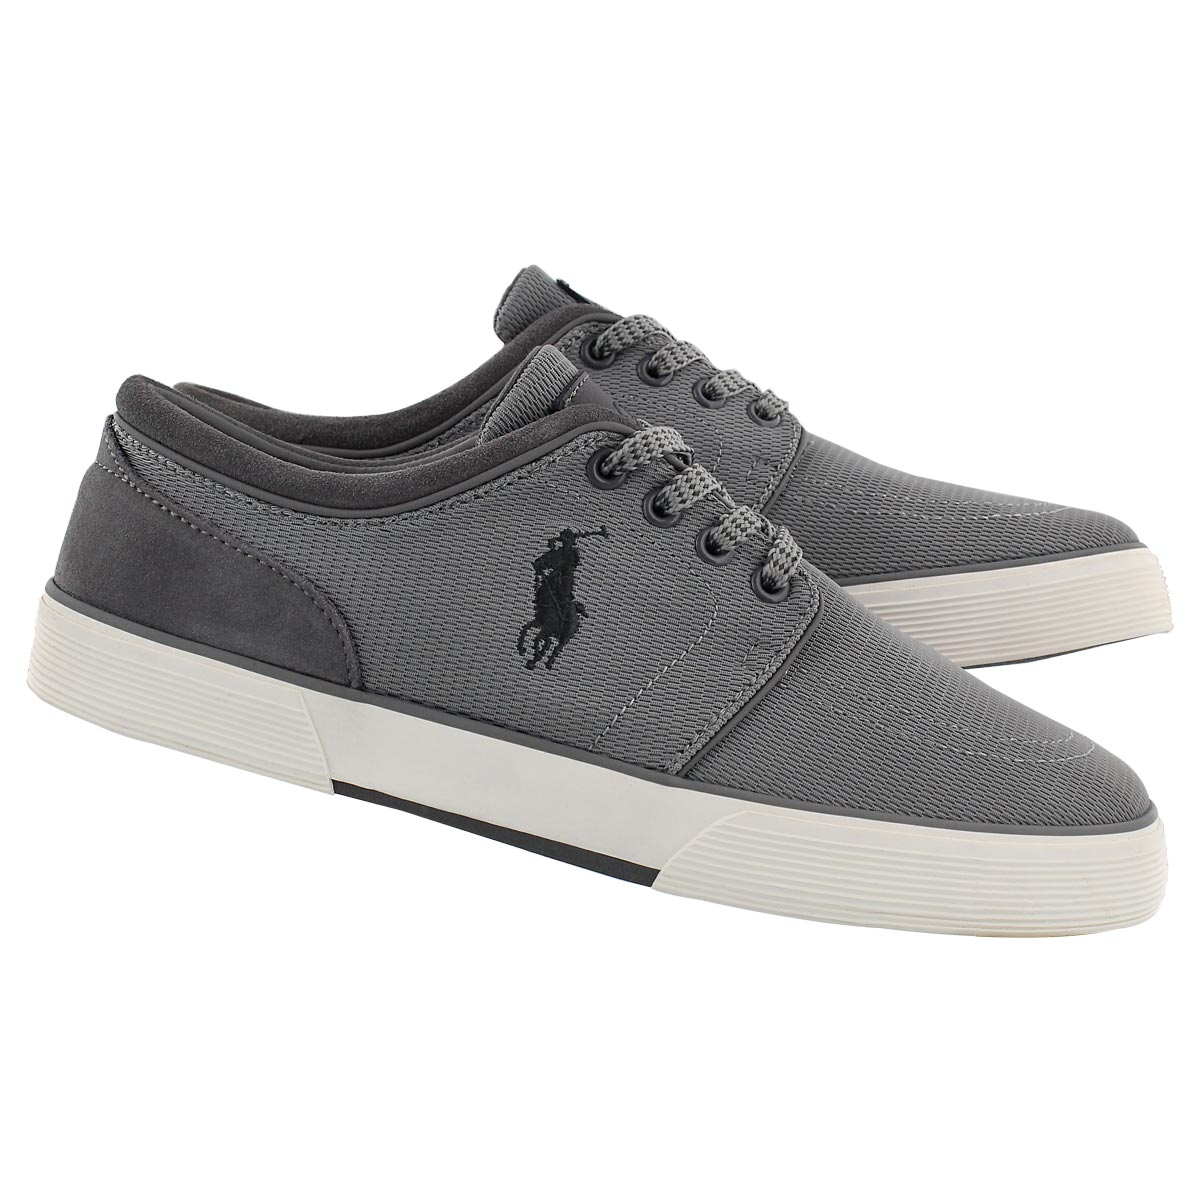 Mns Faxon Low grey lace up sneaker